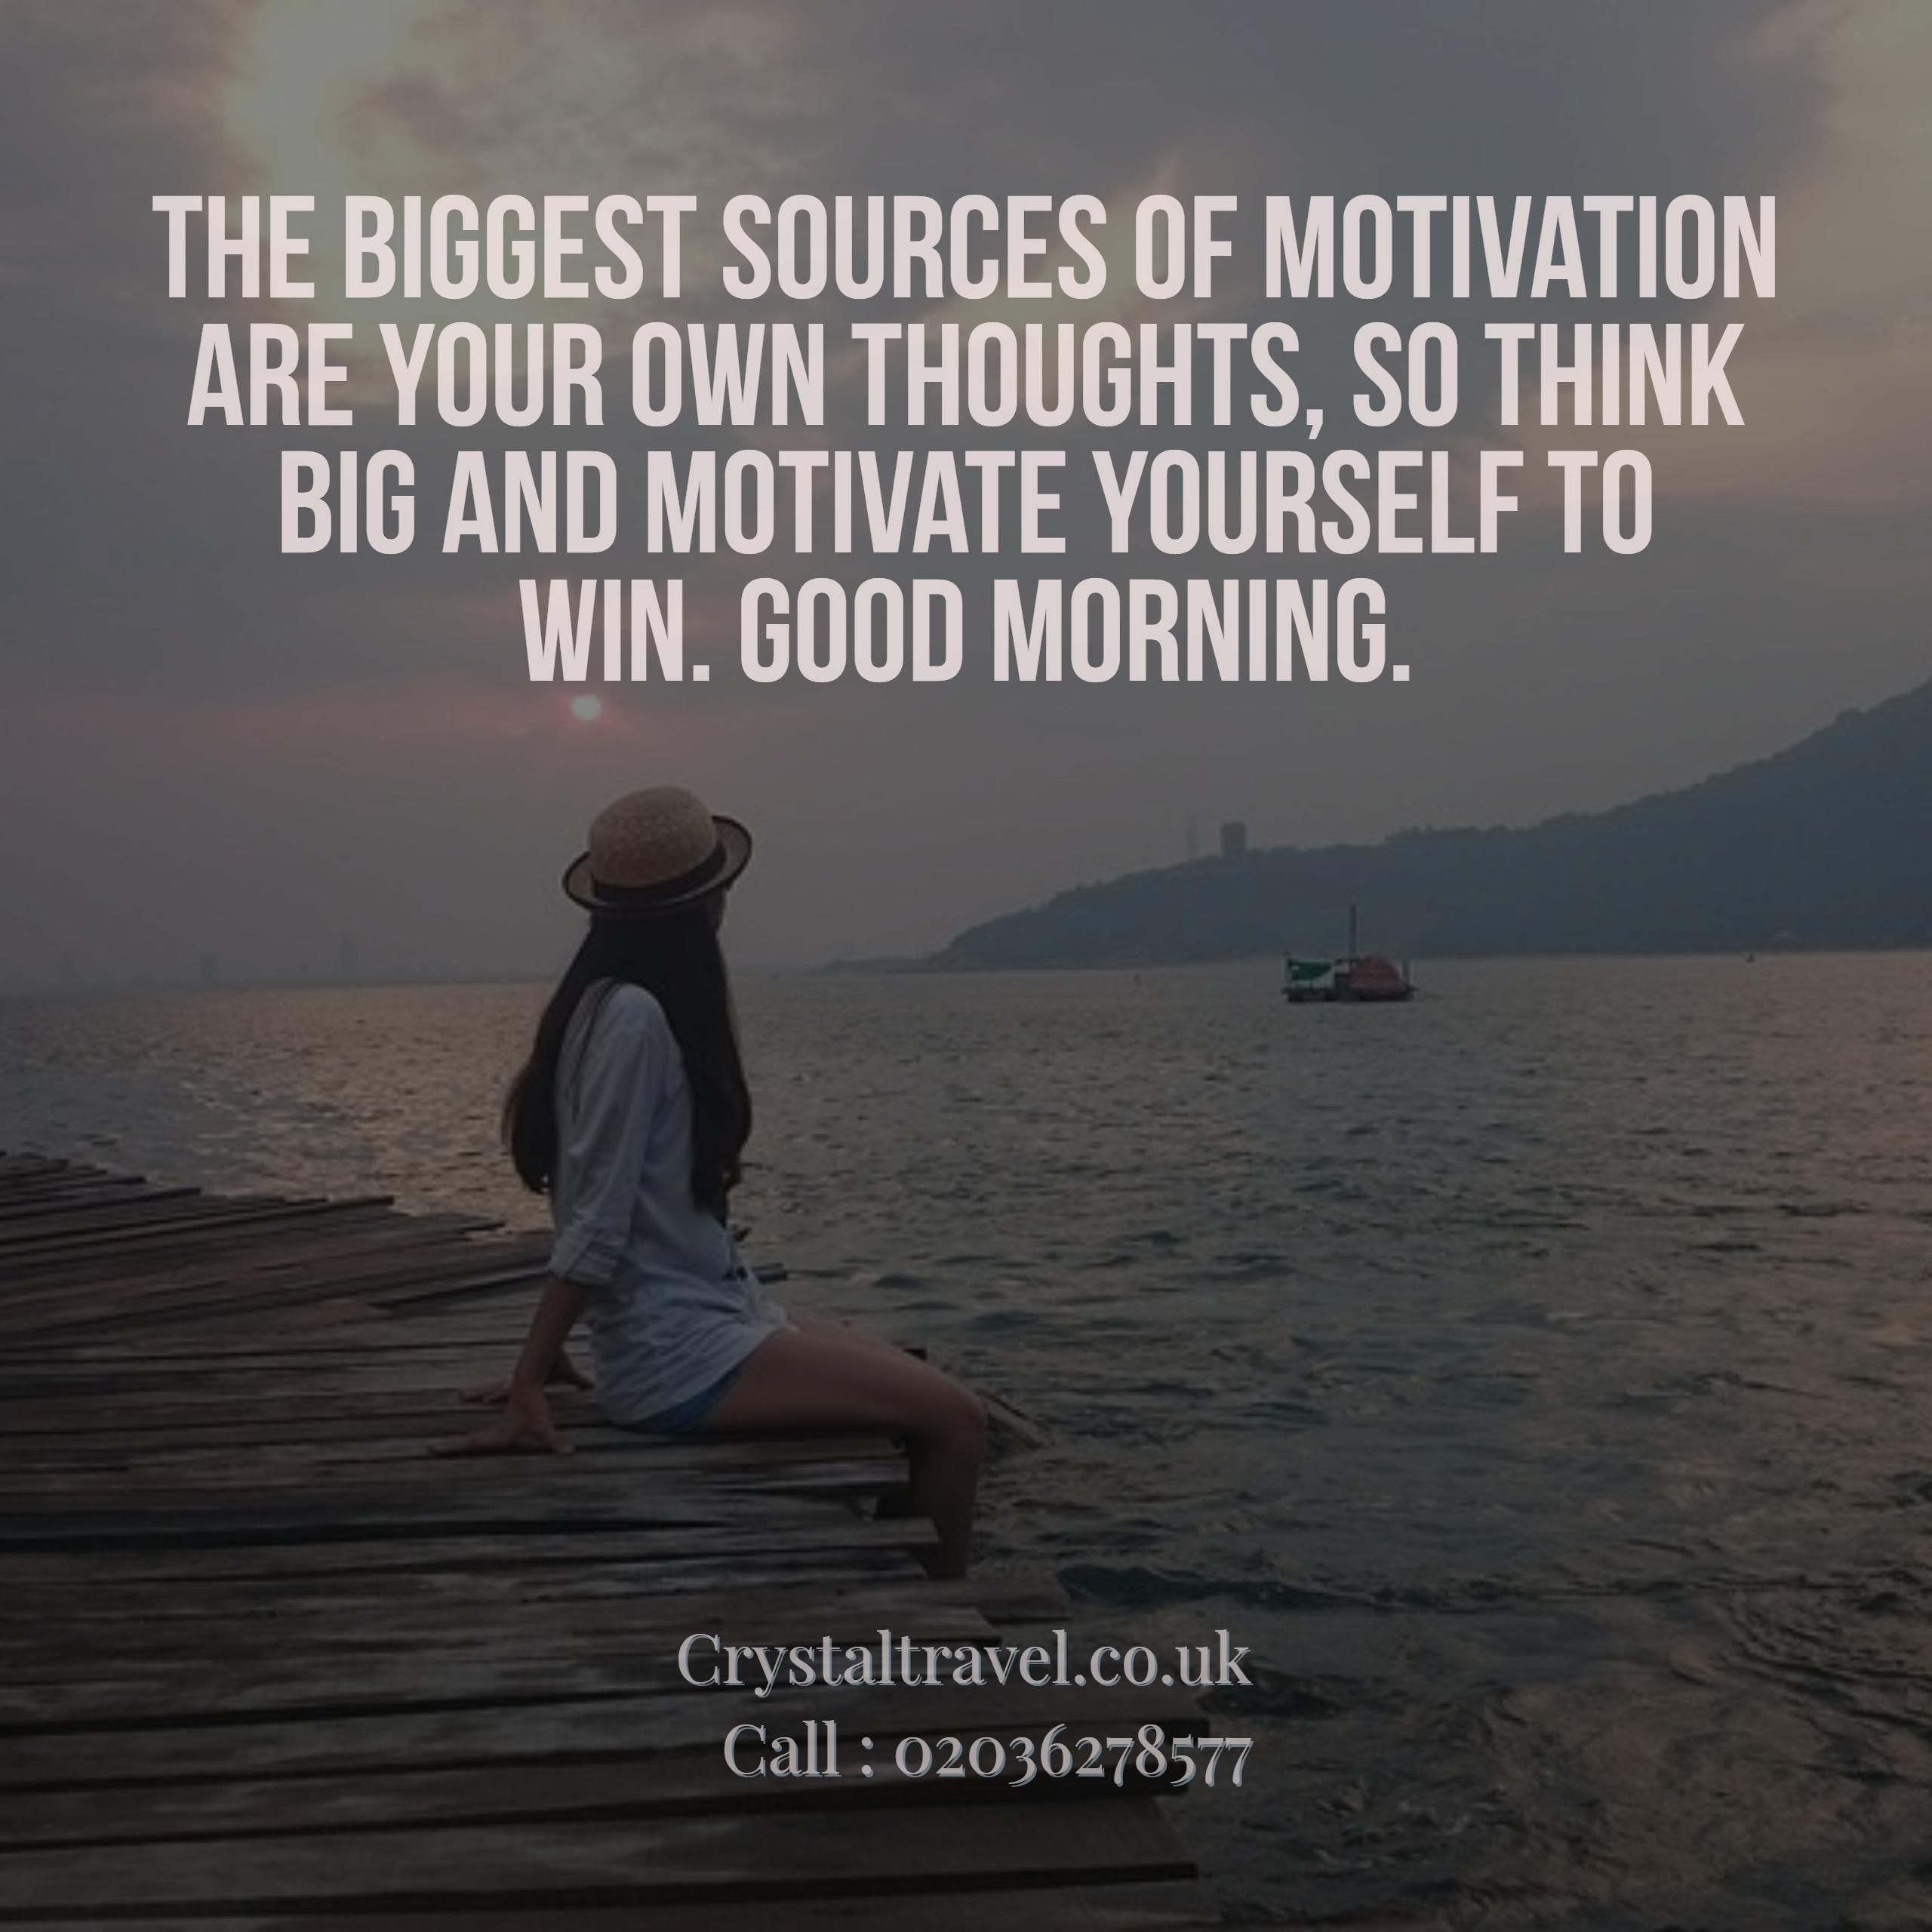 The biggest sources of motivation are your own thoughts ...